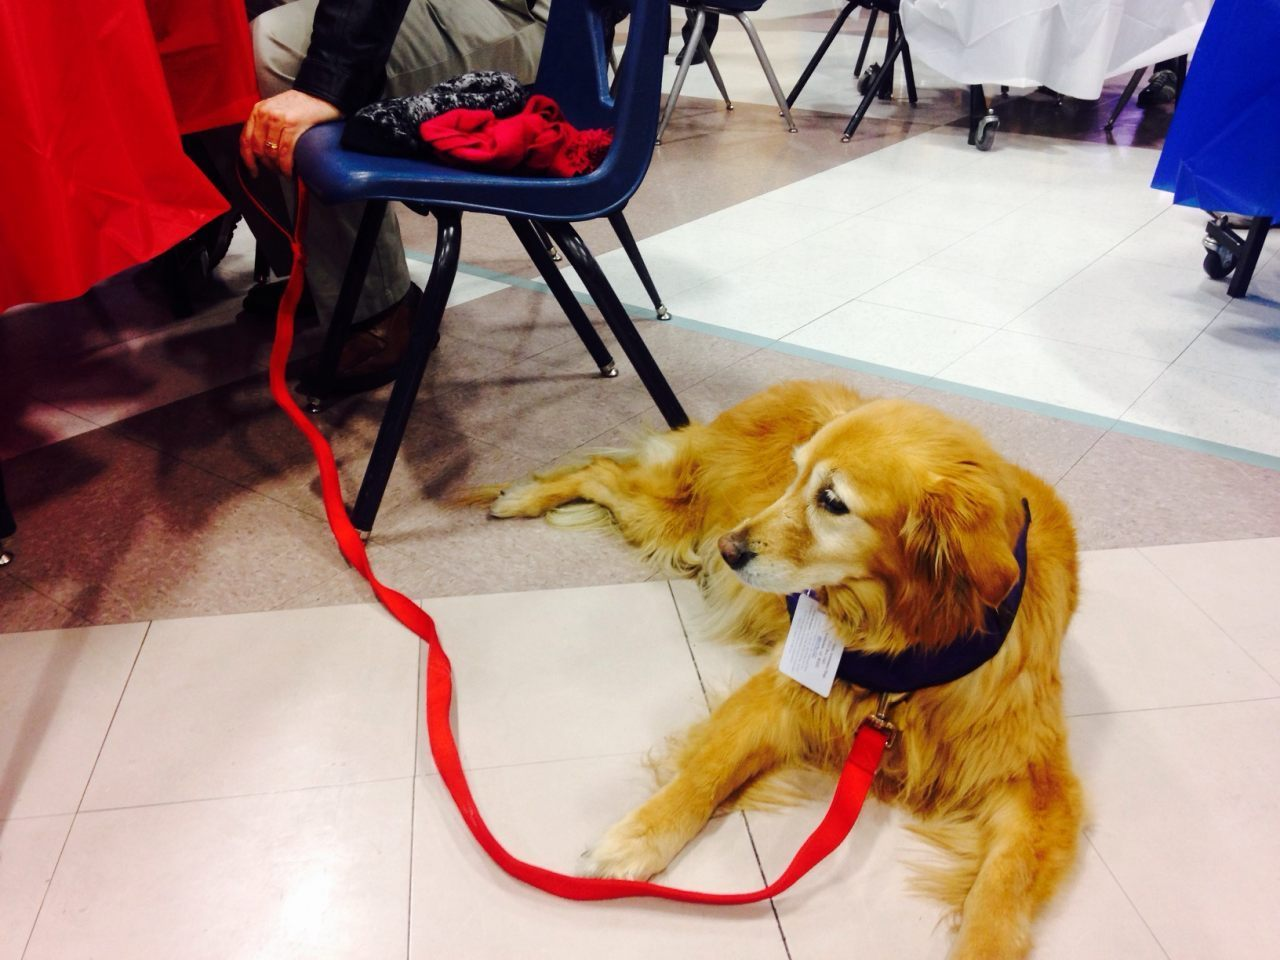 Honey Bear the golden retriever , 11, was also present to caucus for Trump